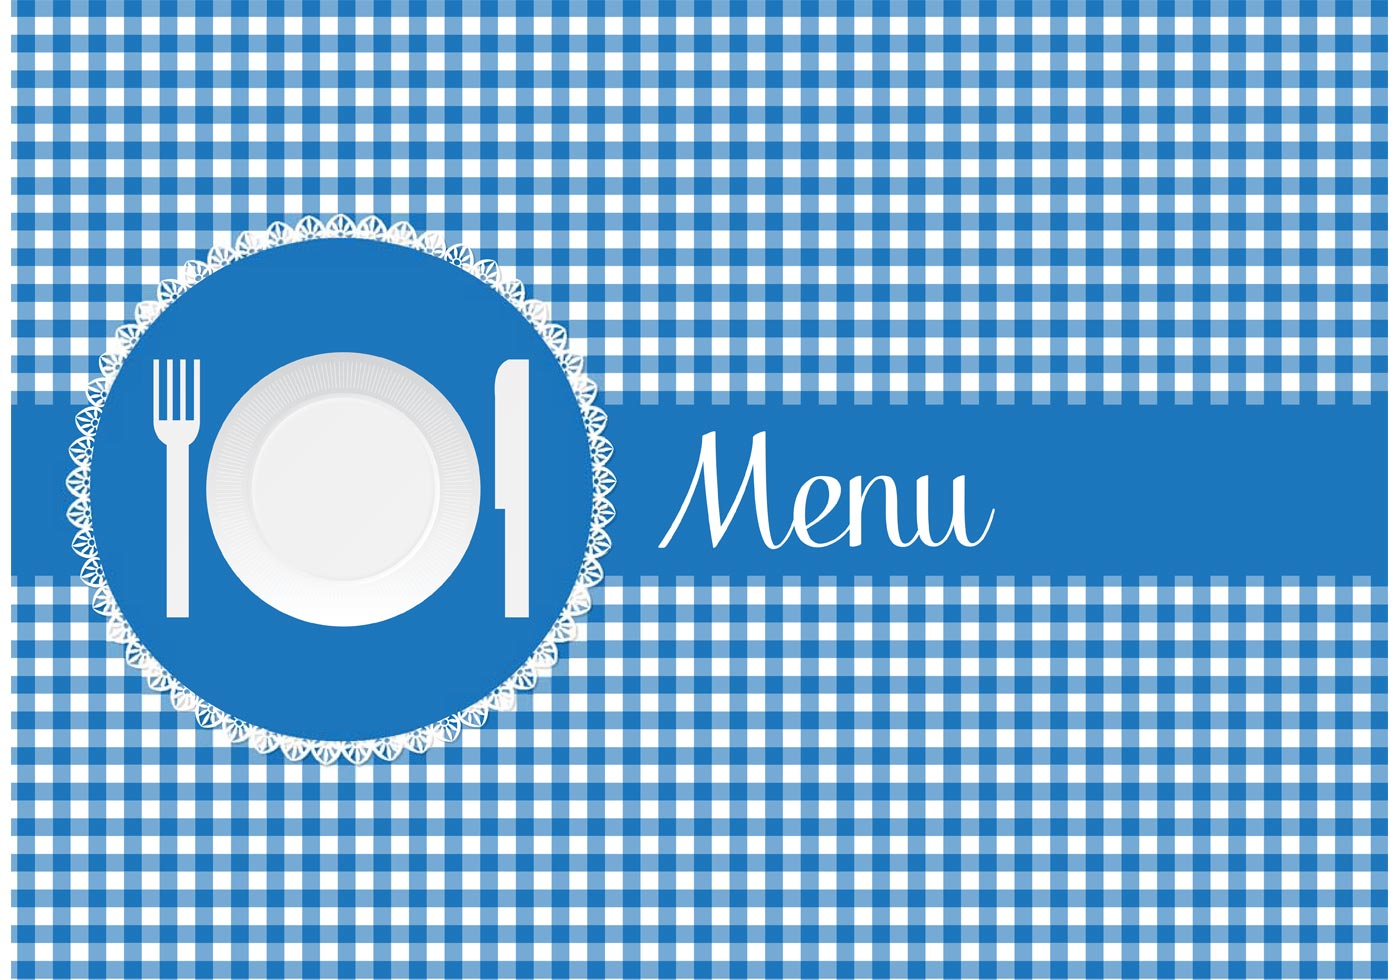 Free Menu Card With Paper Plate Vector Download Free Vector Art Stock Graphics Amp Images